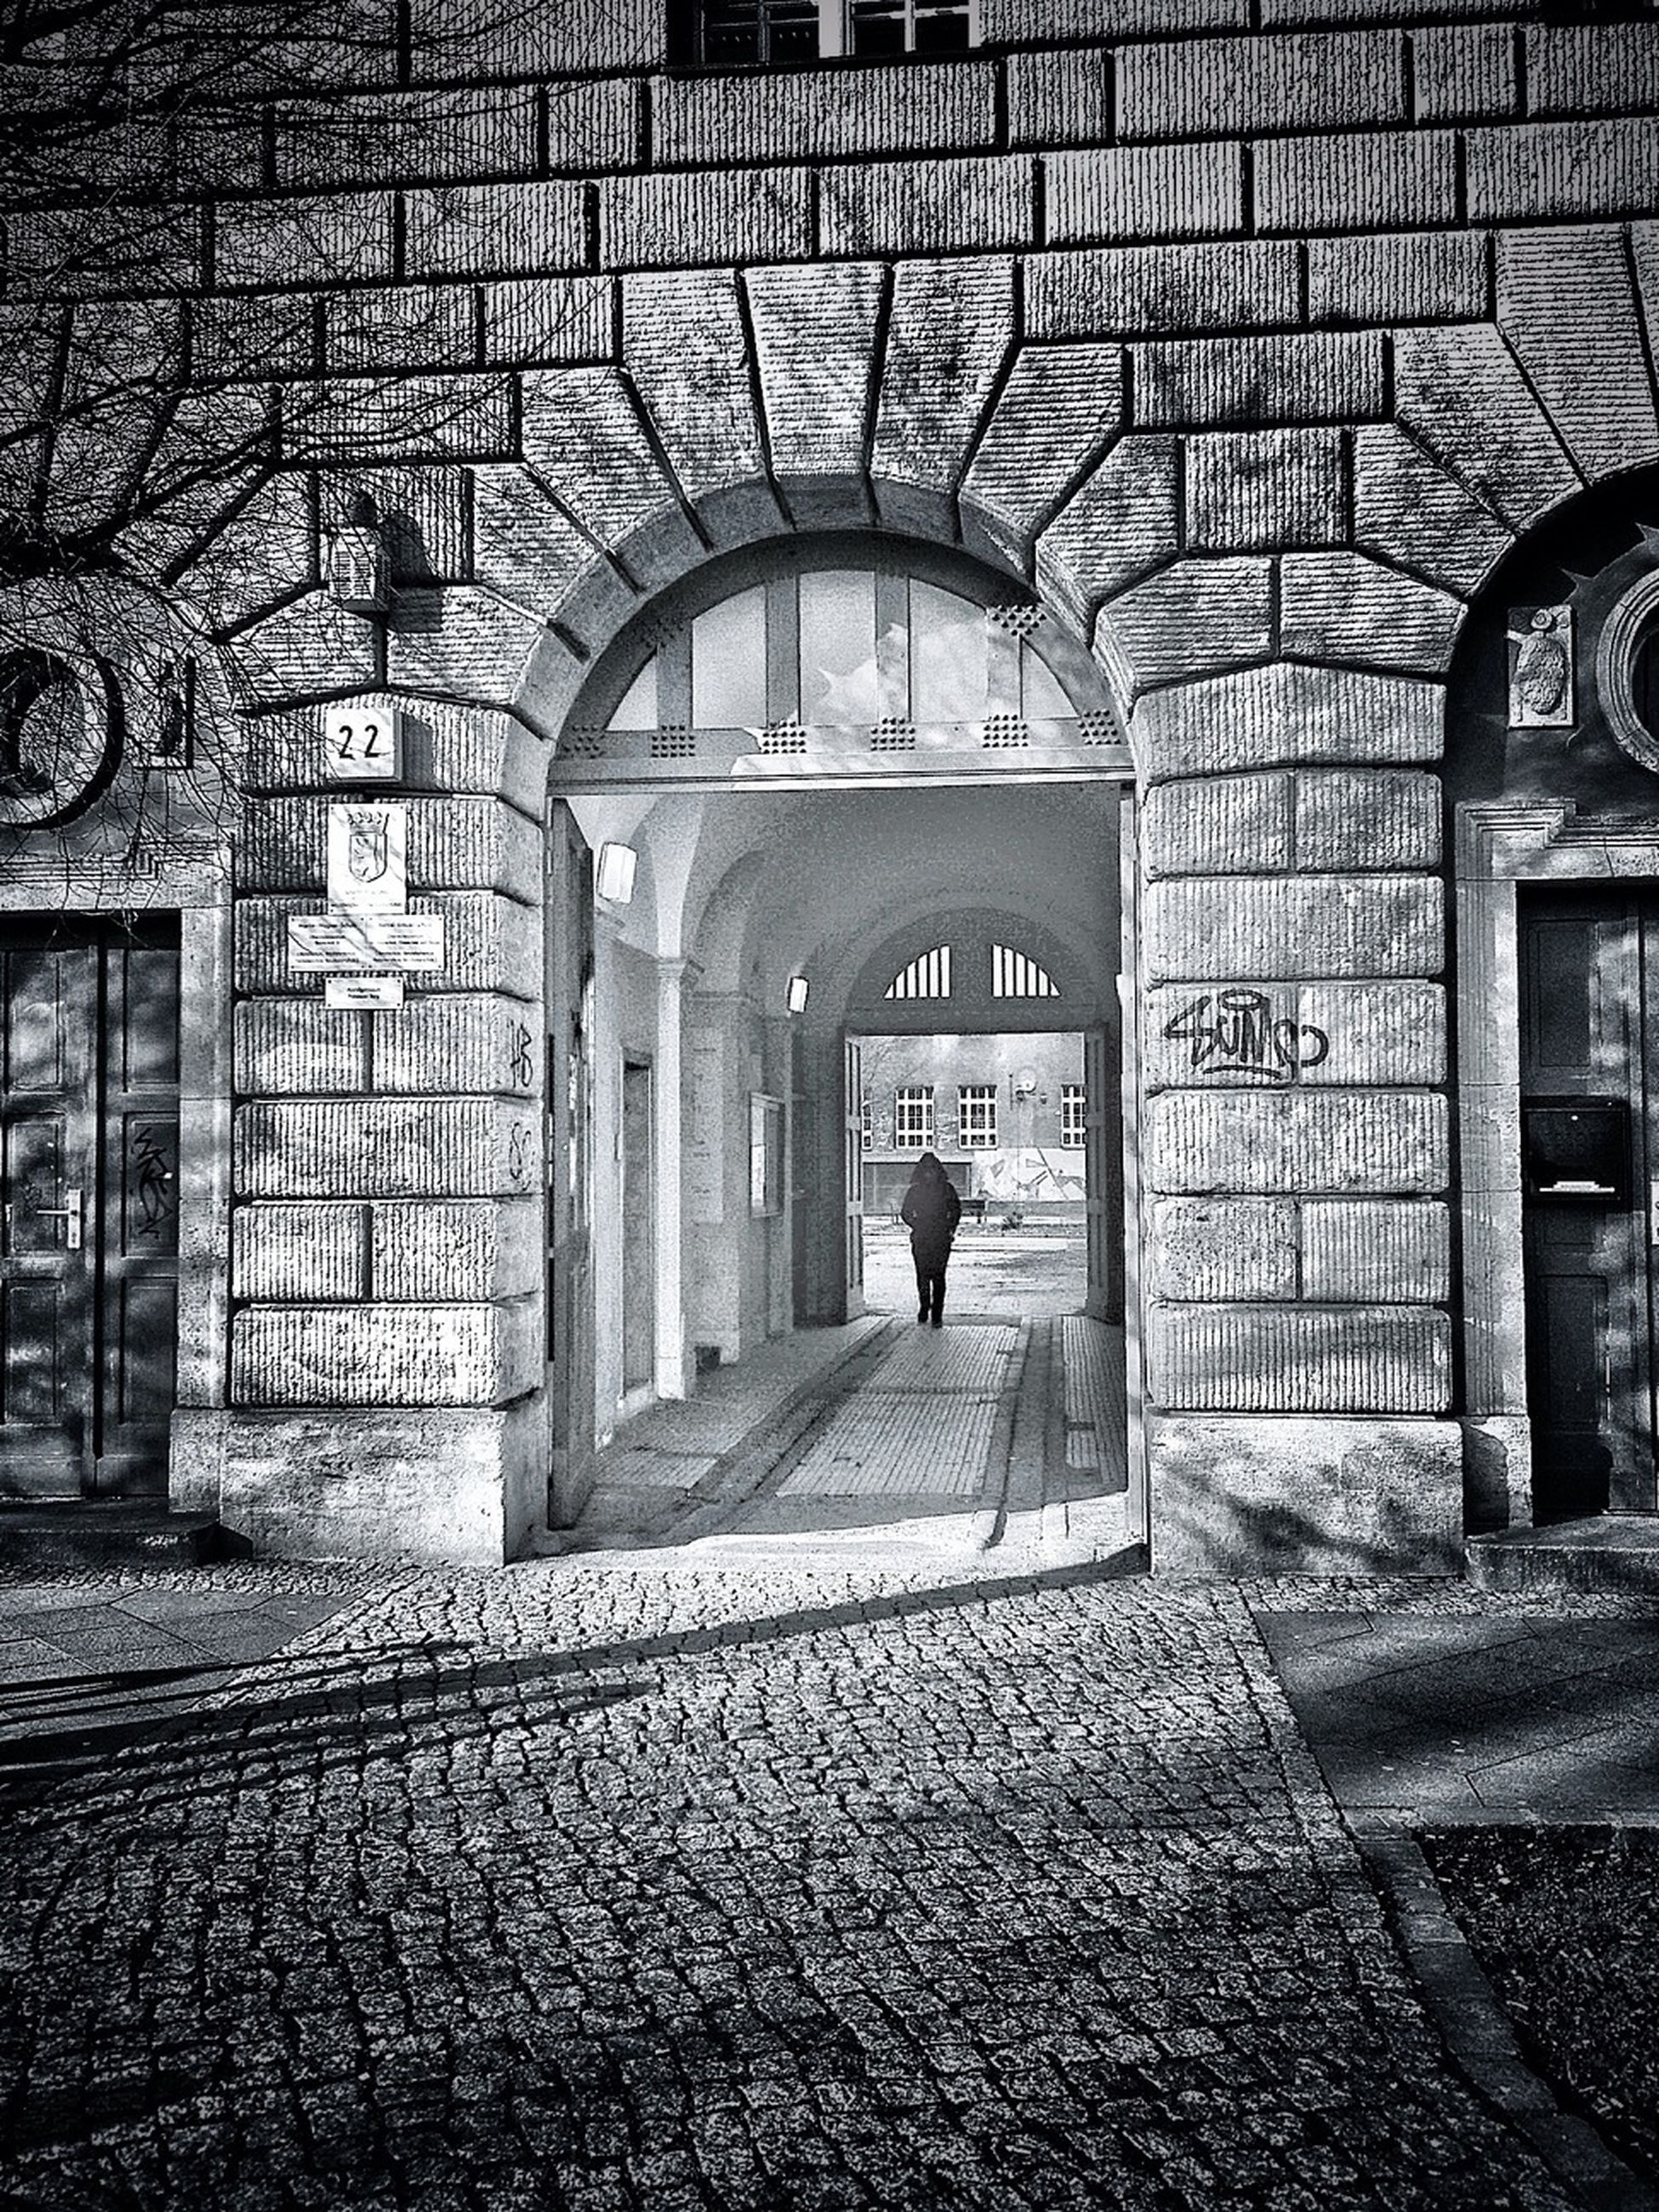 architecture, built structure, arch, building exterior, walking, full length, men, brick wall, entrance, lifestyles, wall - building feature, building, cobblestone, archway, rear view, stone wall, door, day